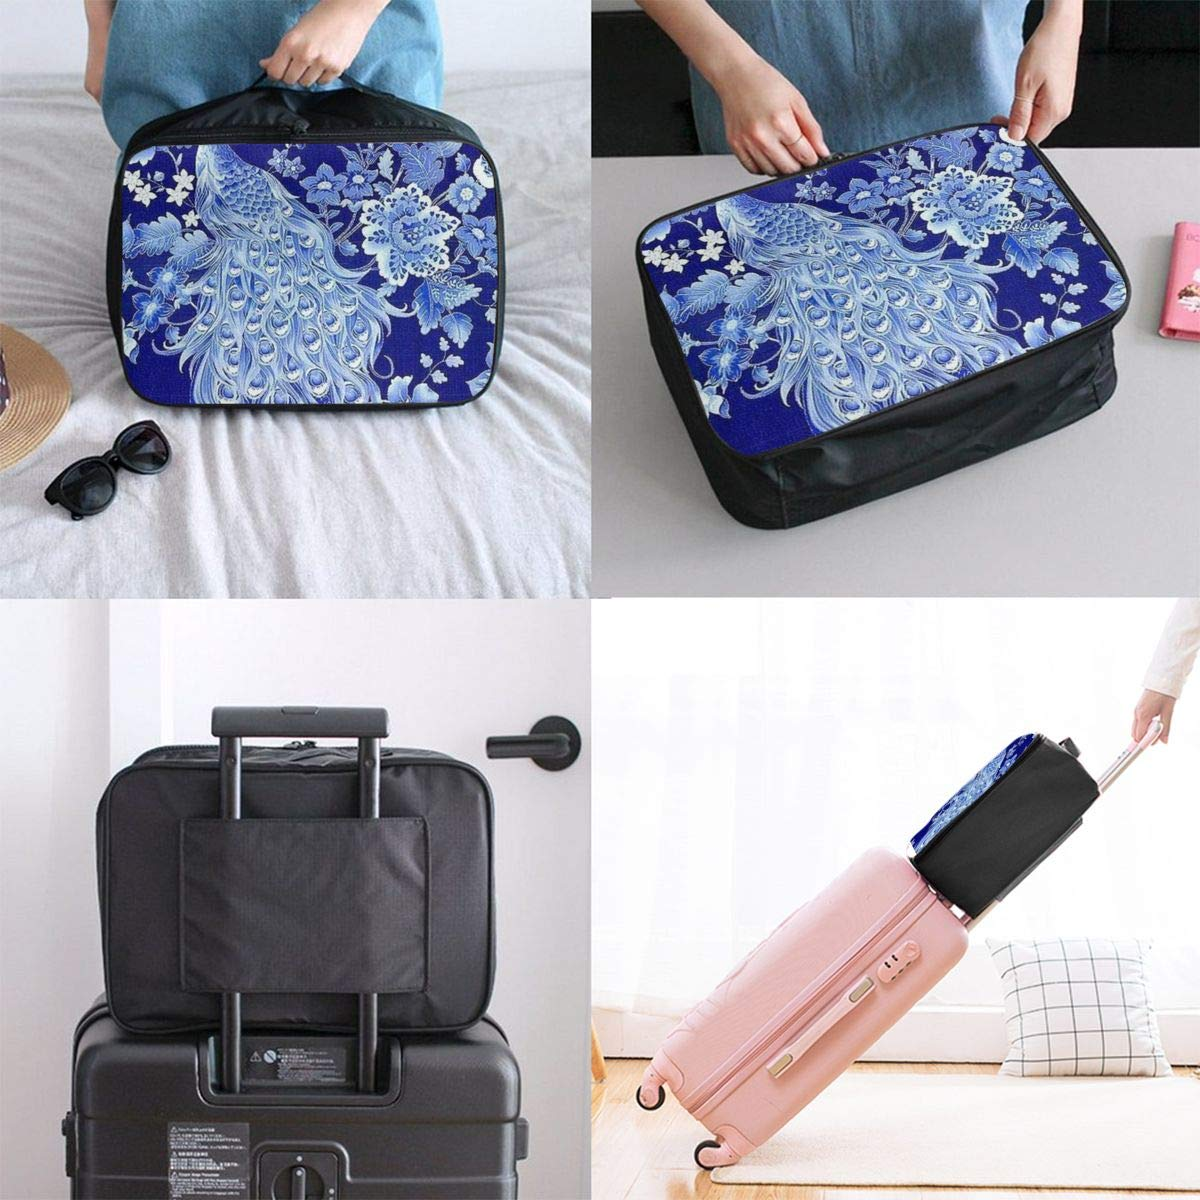 Chinoiserie Blue And White Peacock Travel Lightweight Waterproof Folding Storage Portable Luggage Duffle Tote Bag Large Capacity In Trolley Handle Bags 6x11x15 Inch